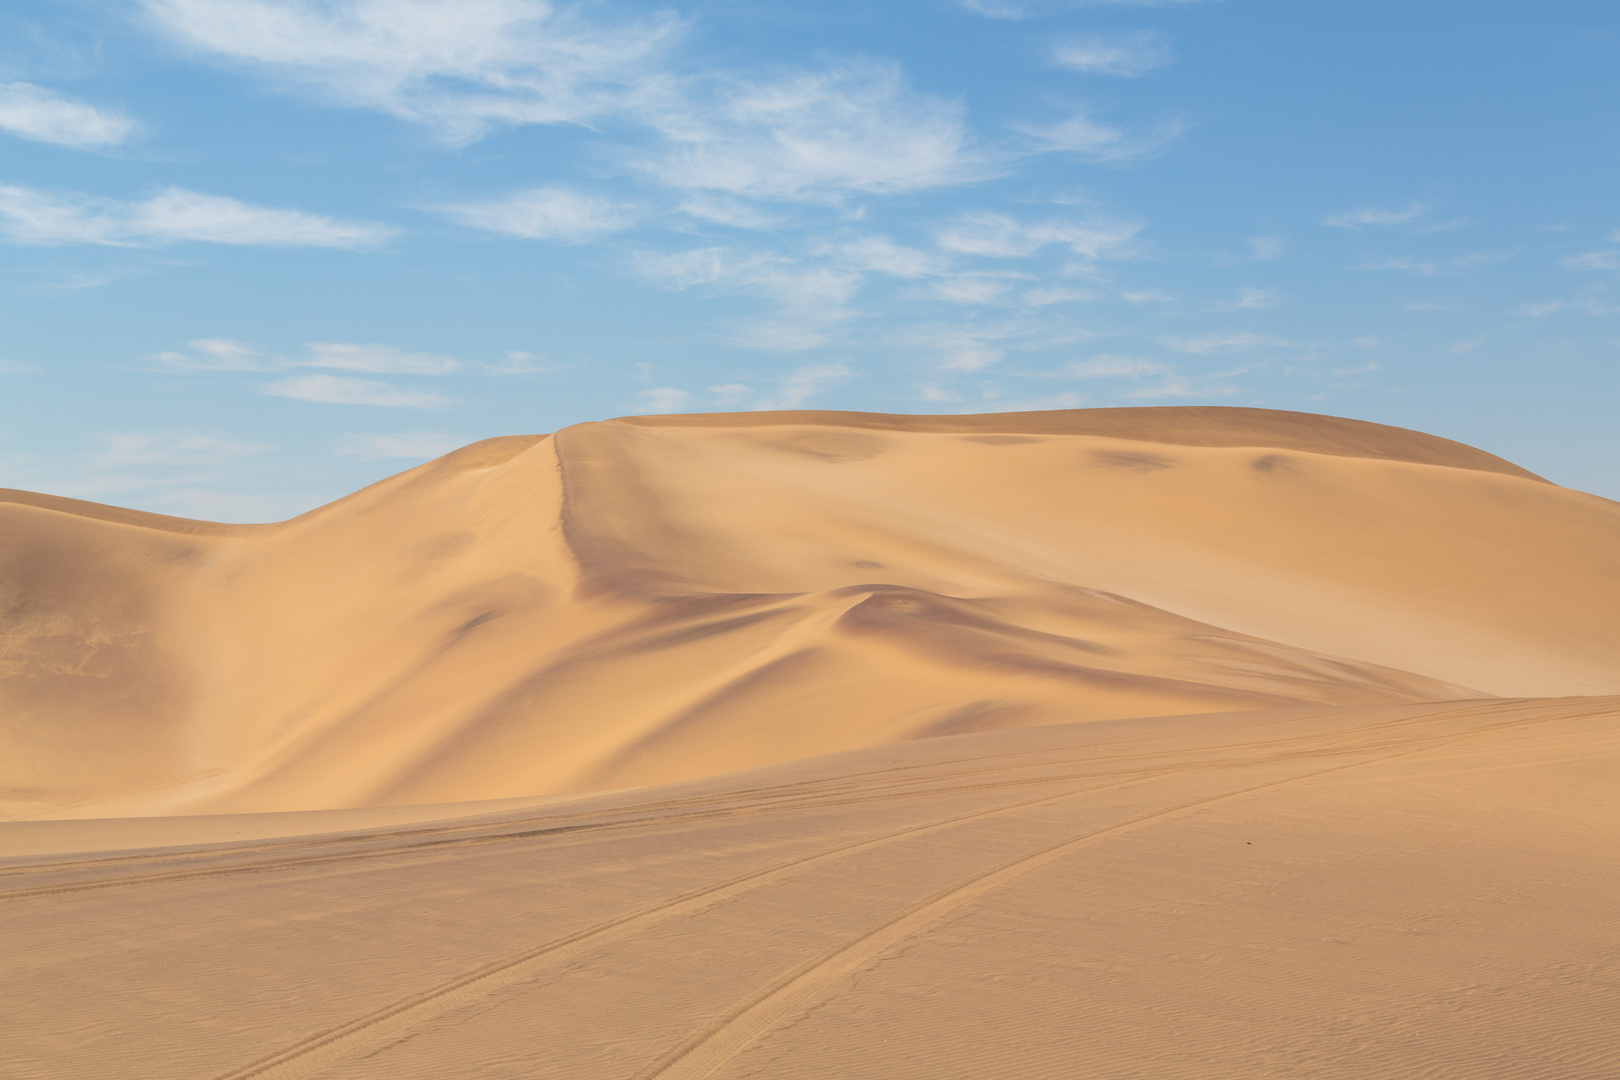 Glowing sand dunes in the Namib